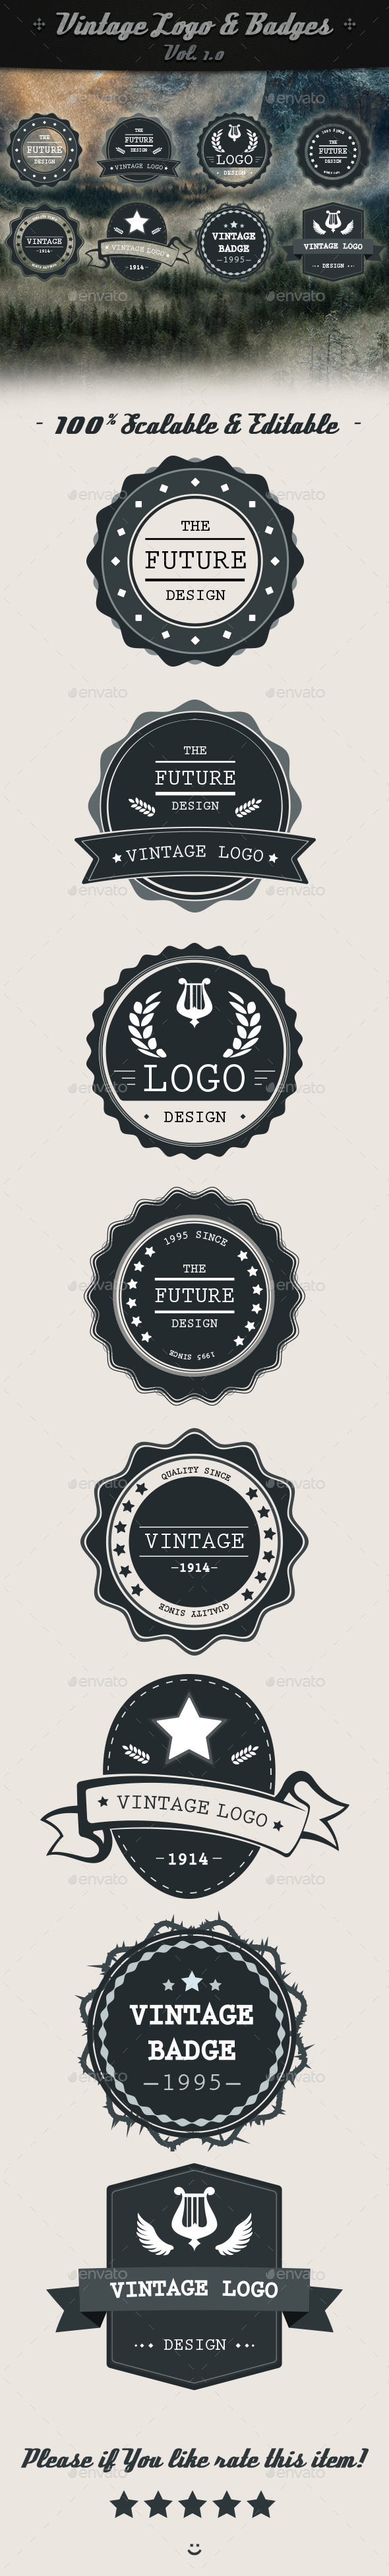 GraphicRiver Vintage Logo & Badges V.1.0 10638755